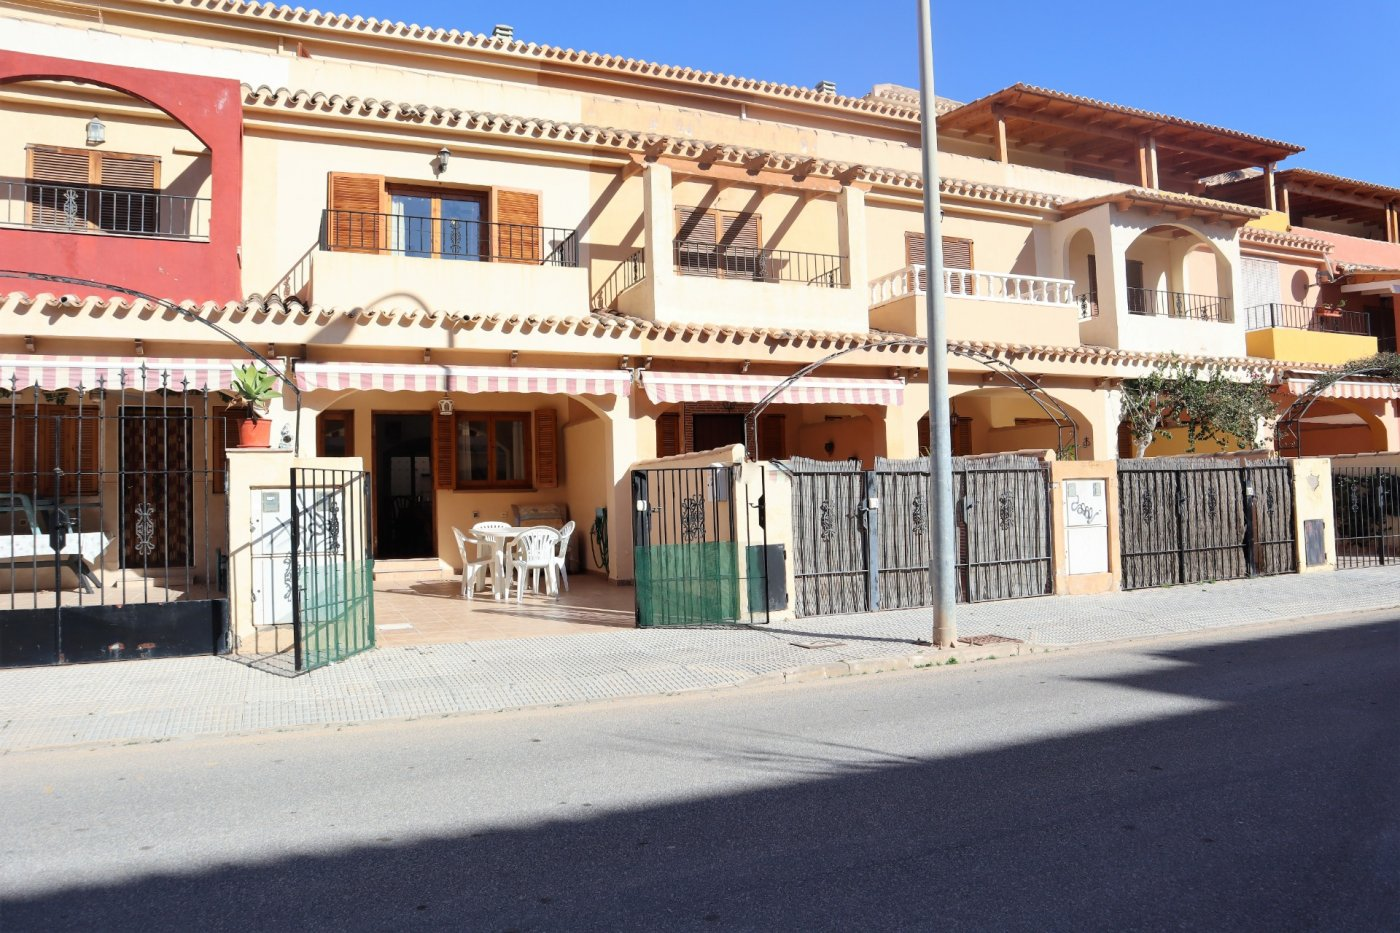 Townhouse for sale in Plaza 525, Los Alcazares